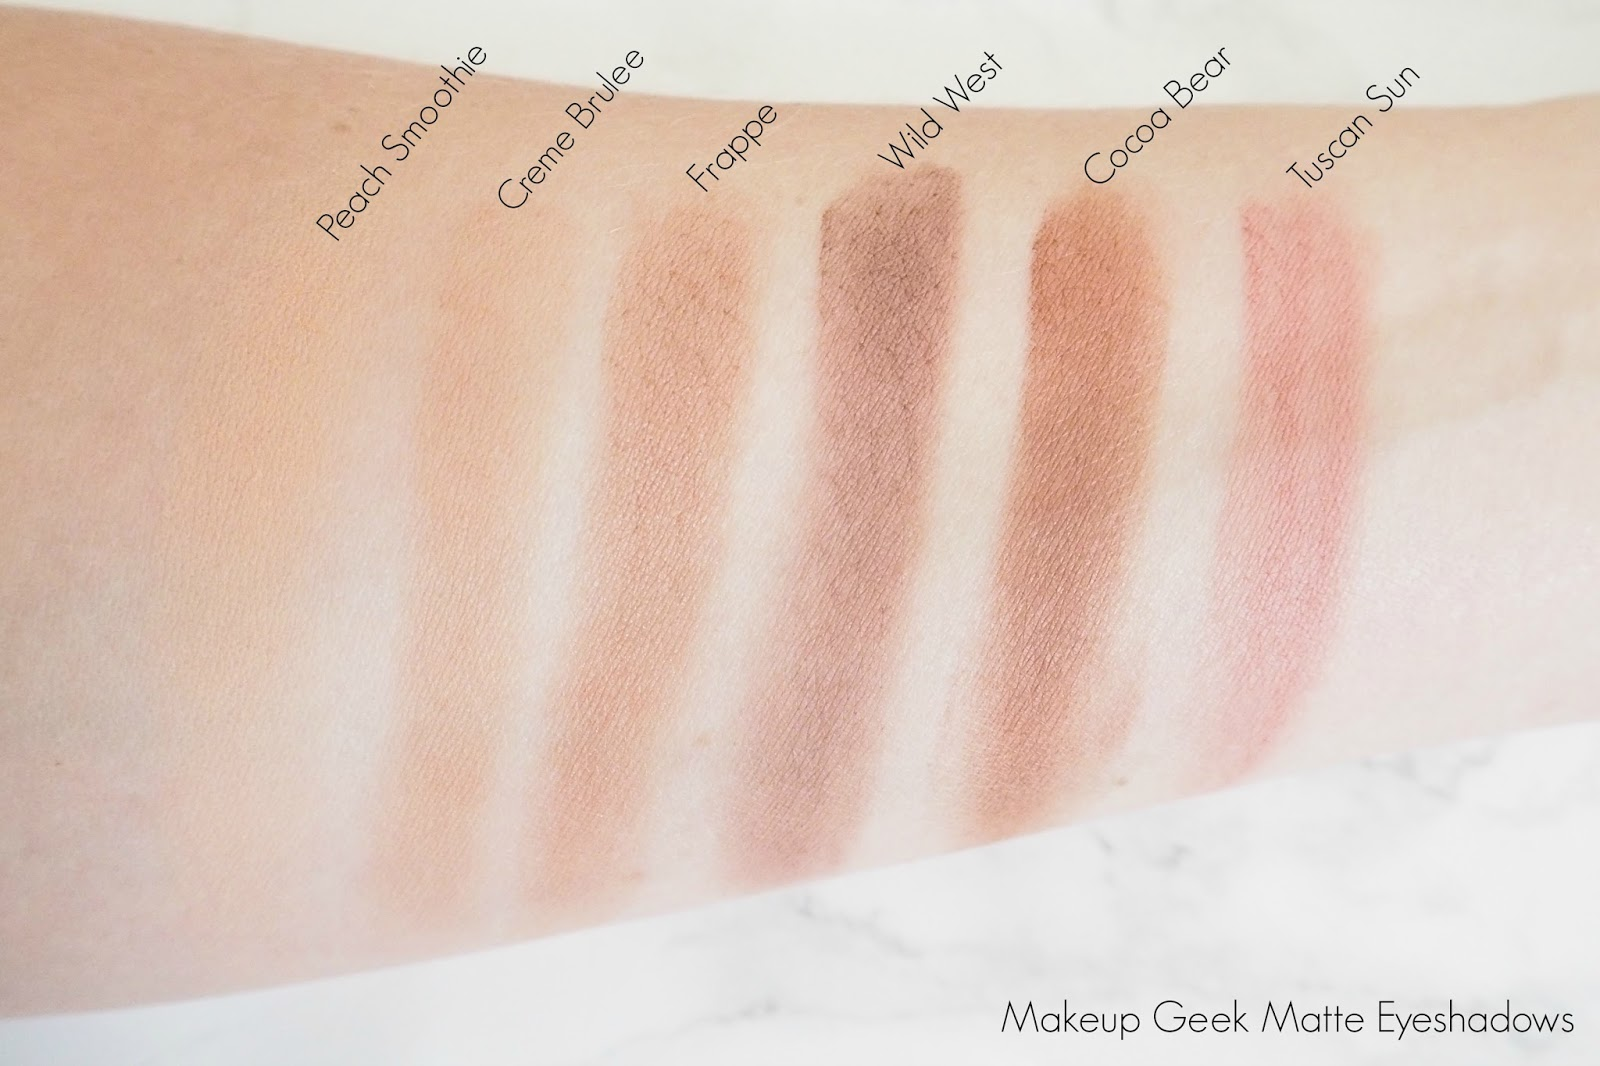 Makeup Geek Matte Eyeshadow Swatches